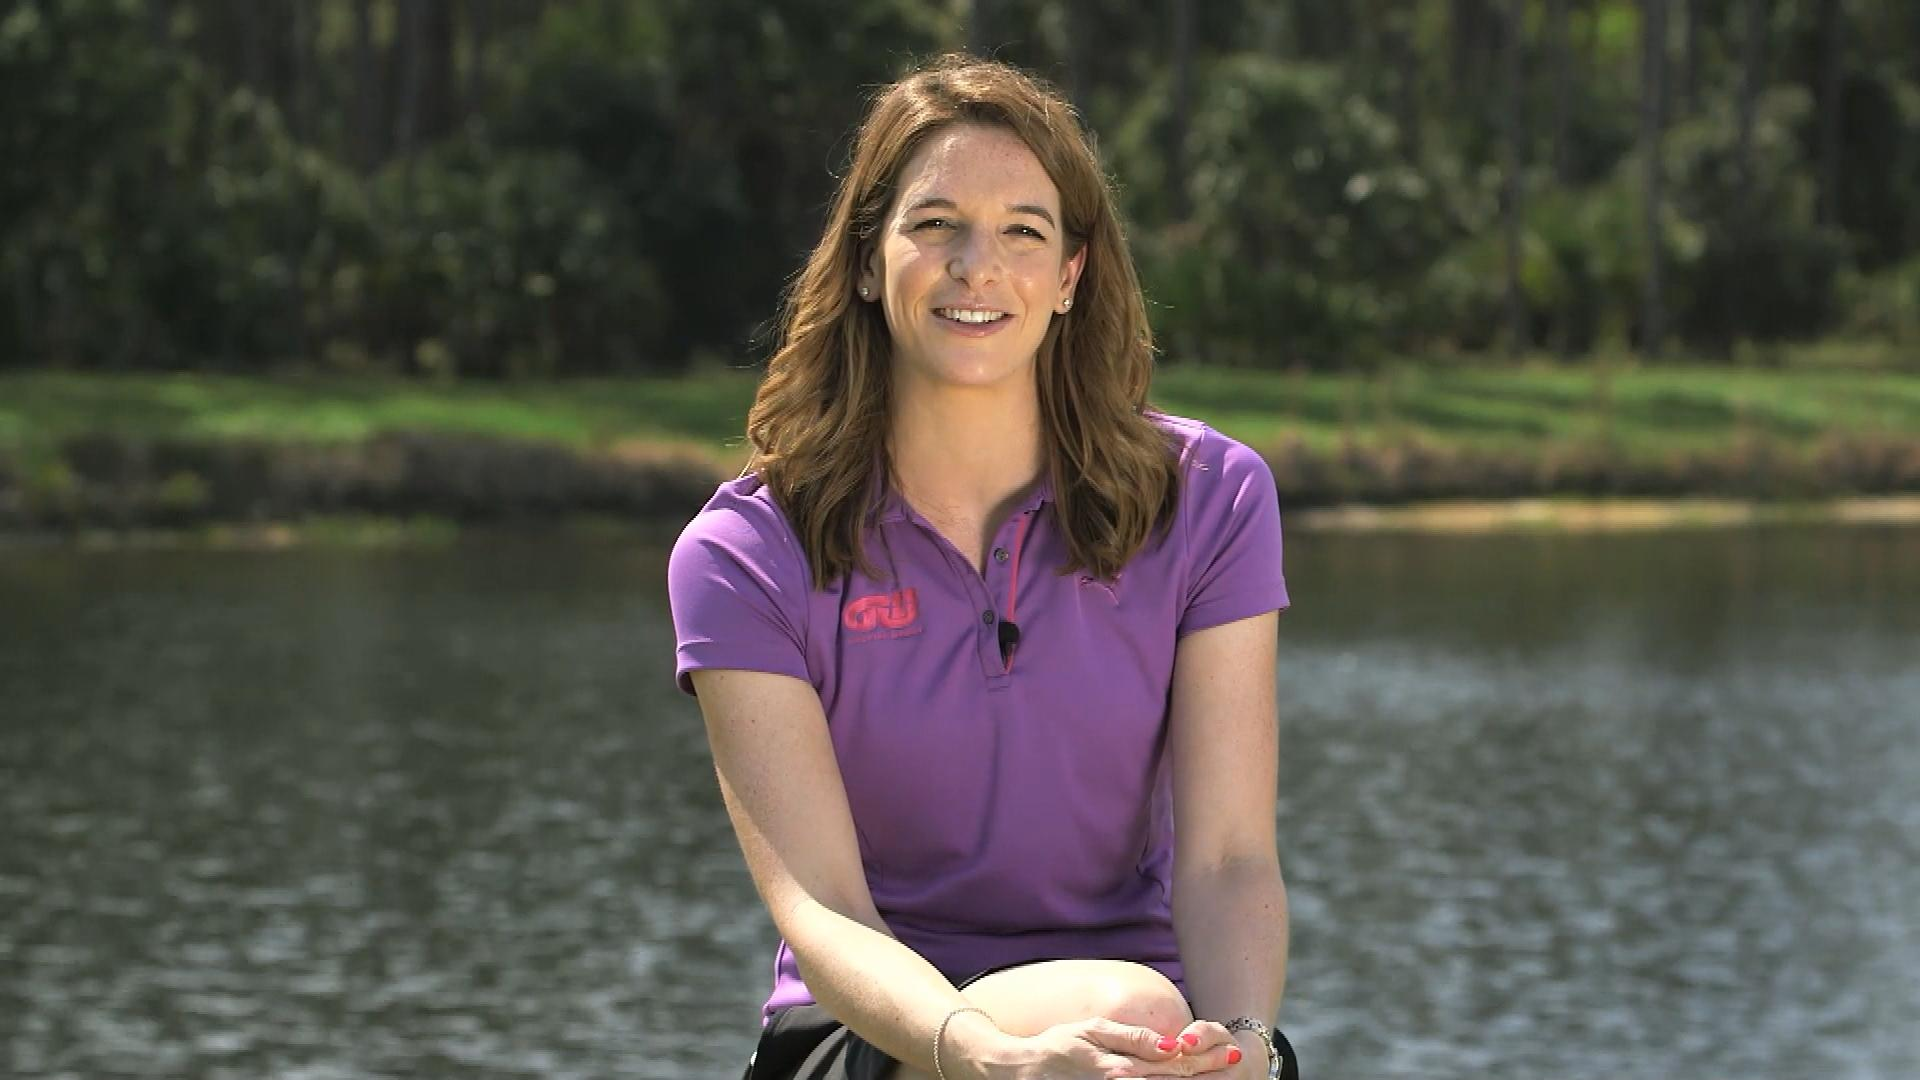 Cara Robinson Golf Channel >> Golfing World – March 18, 2014 | Golf Channel